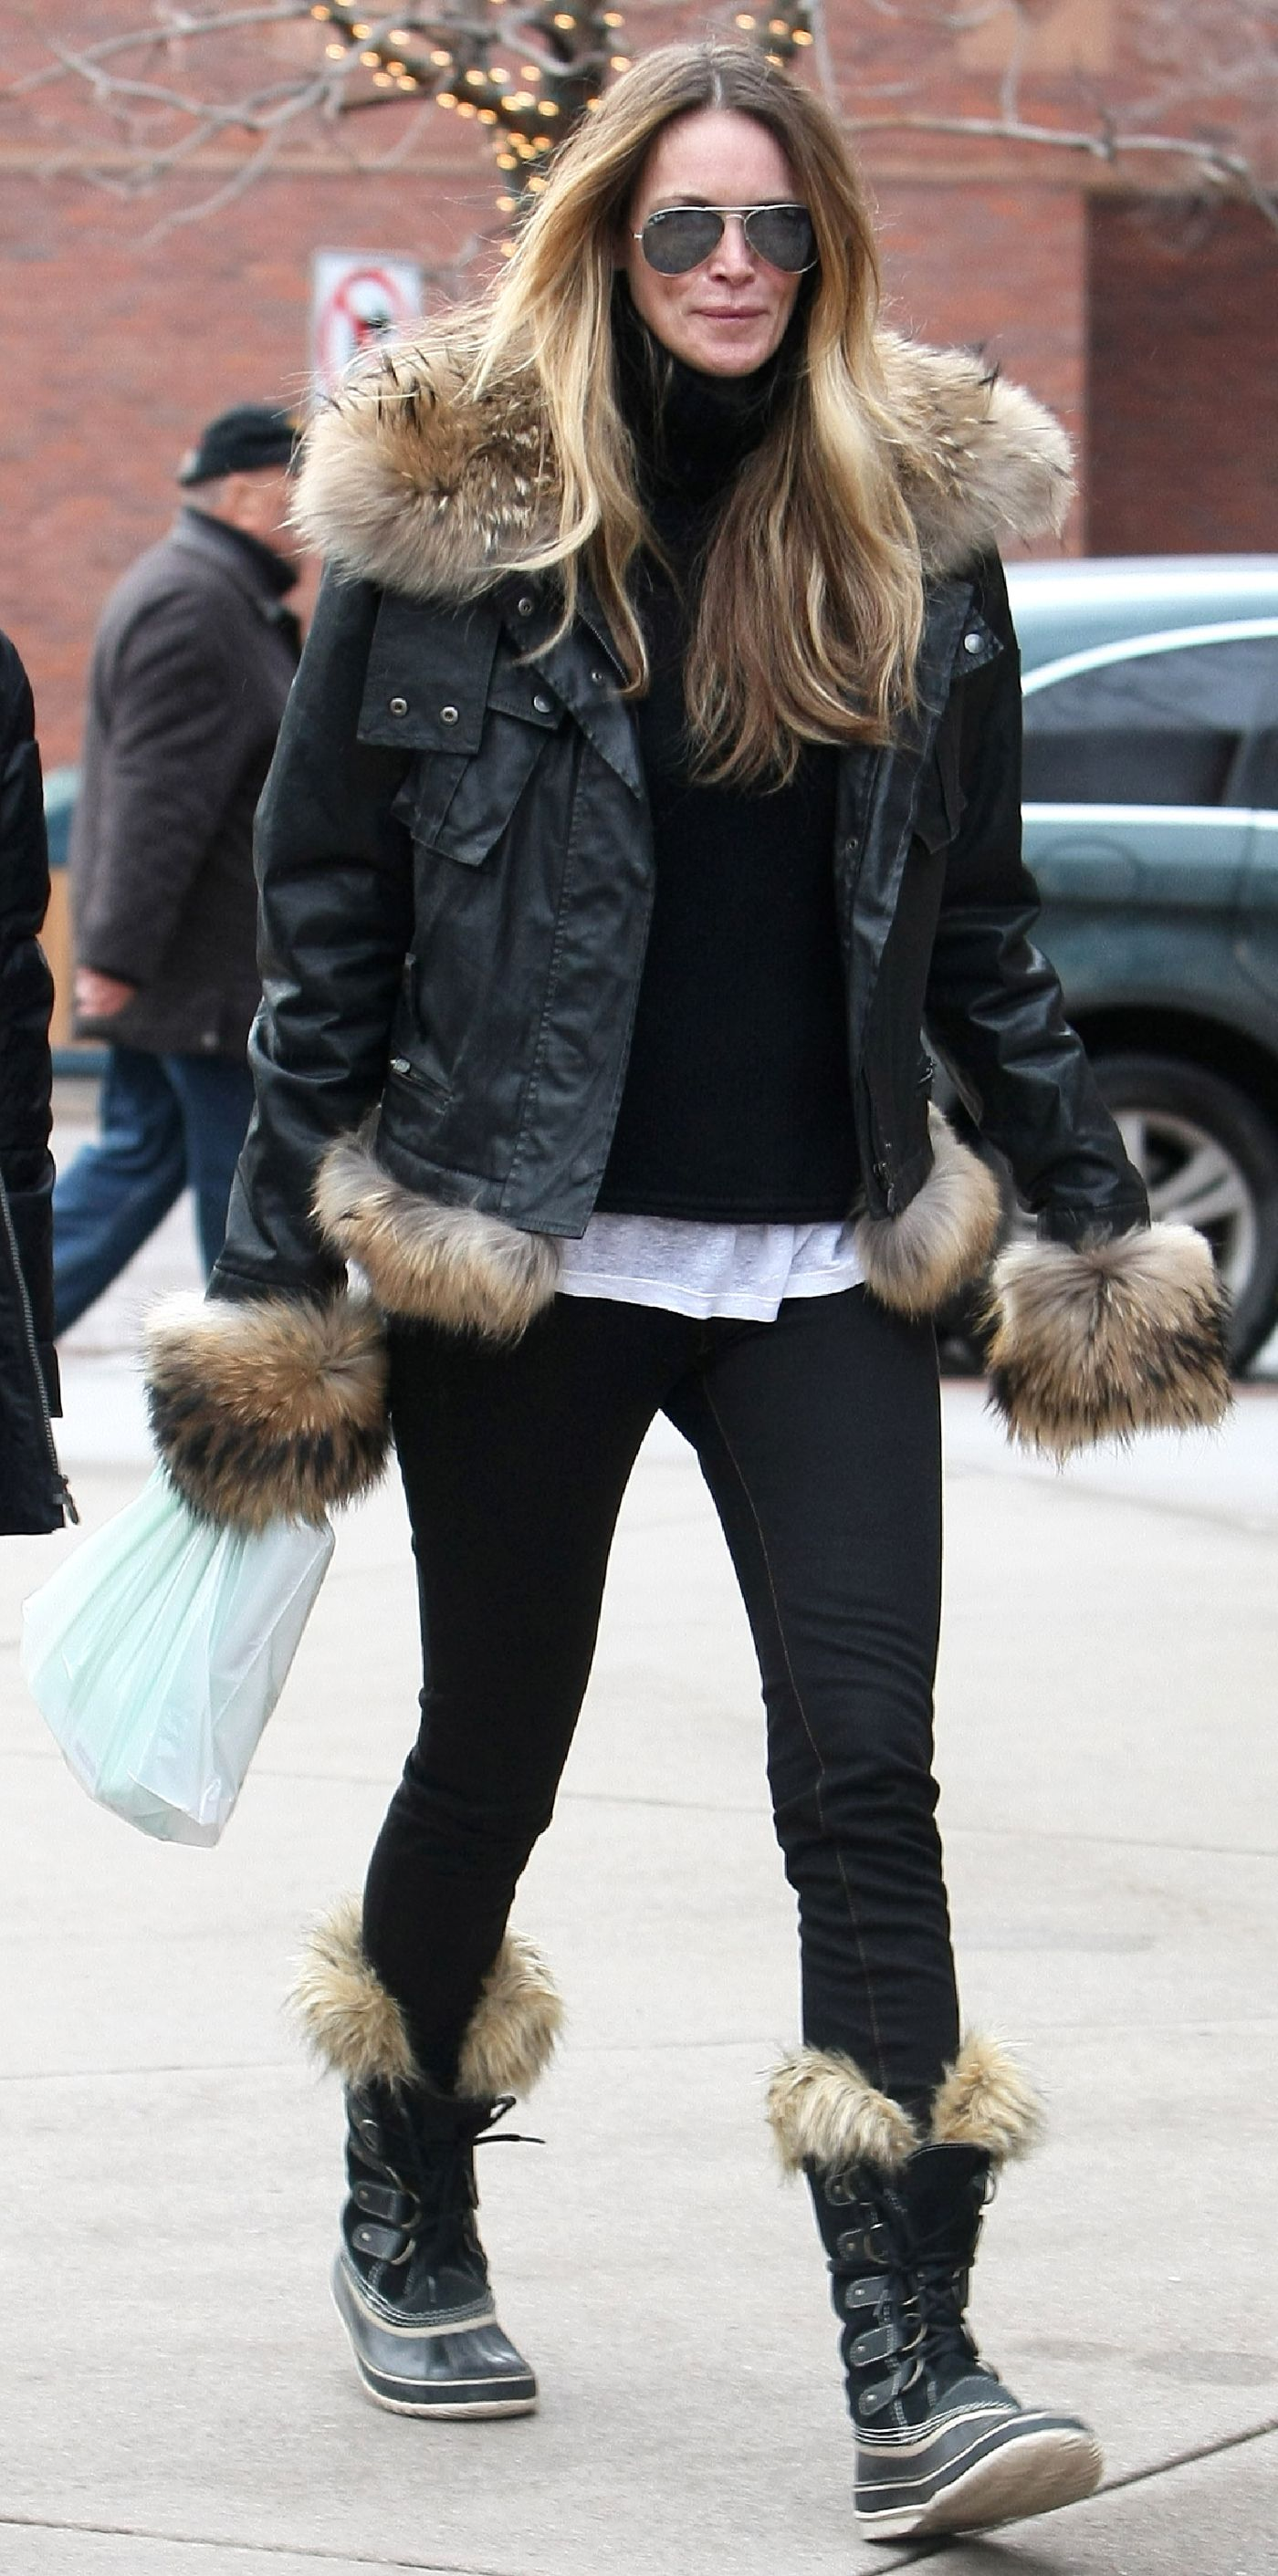 33eaf188c42 Celebrities Love Their Sorel Boots - Elle MacPherson from InStyle.com